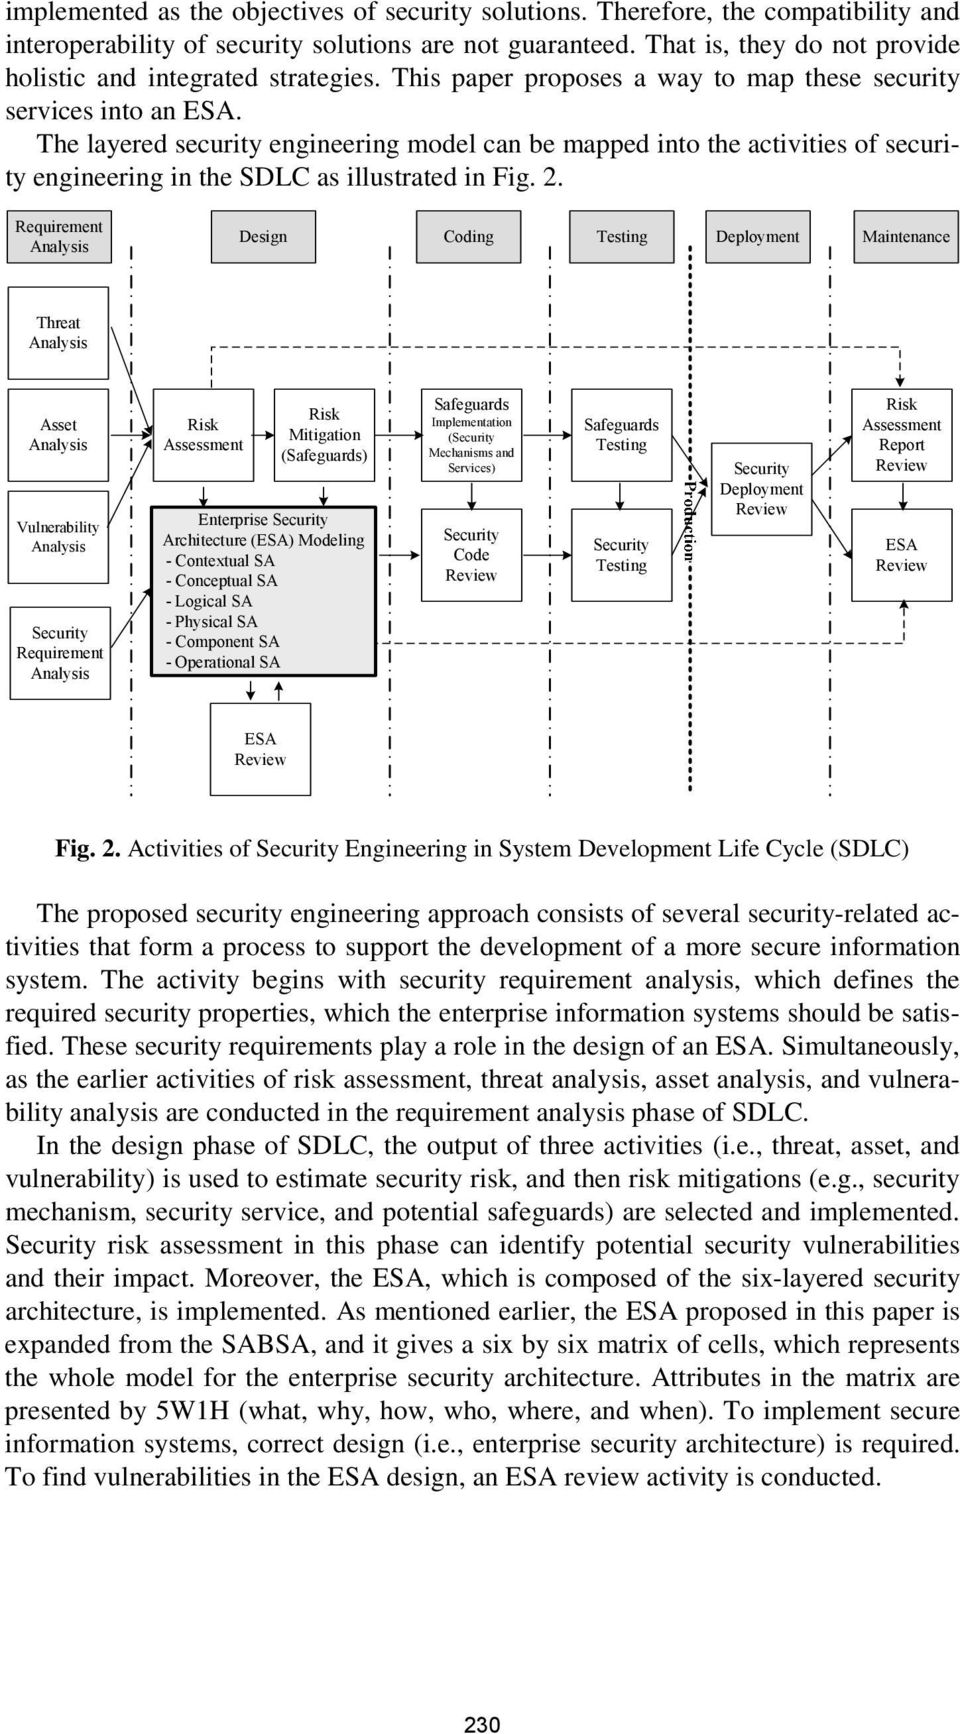 The layered security engineering model can be mapped into the activities of security engineering in the SDLC as illustrated in Fig. 2.